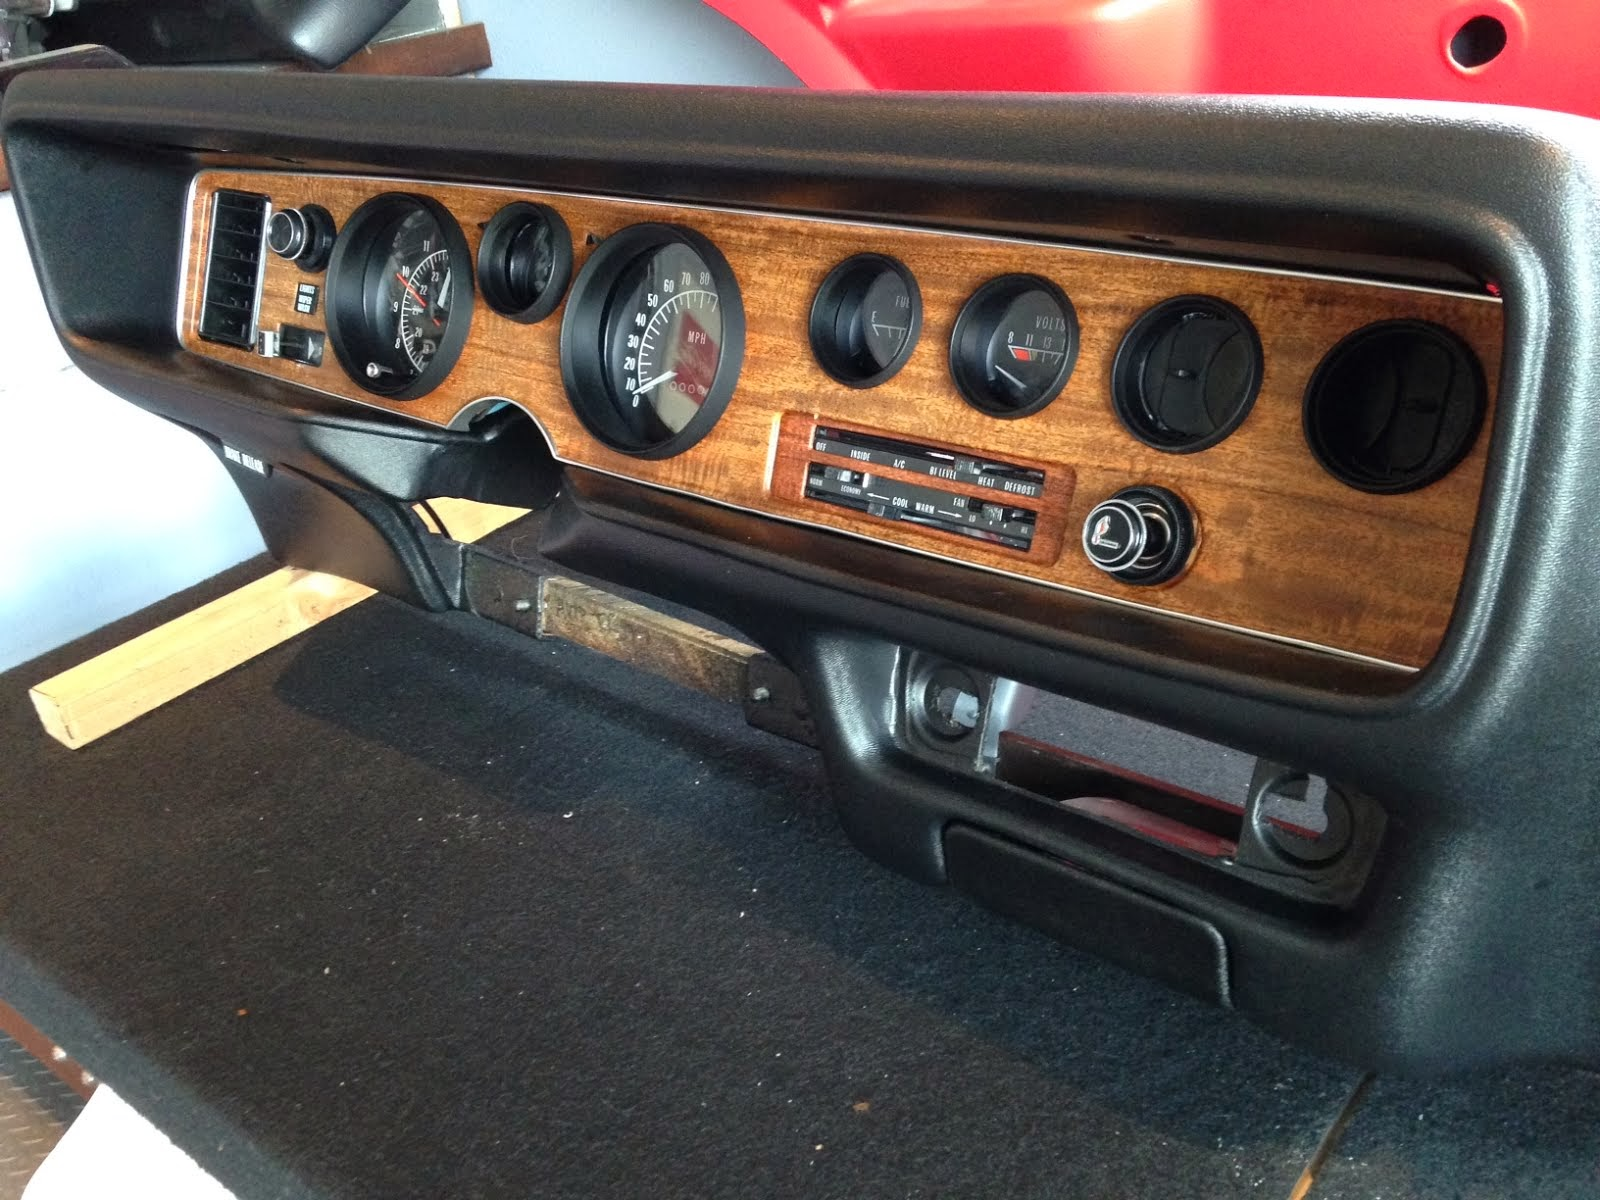 79 Trans Am Dash Wiring Diagram 3 Wire 220 Volt 1980 Pictures To Pin On Pinterest Pinsdaddy